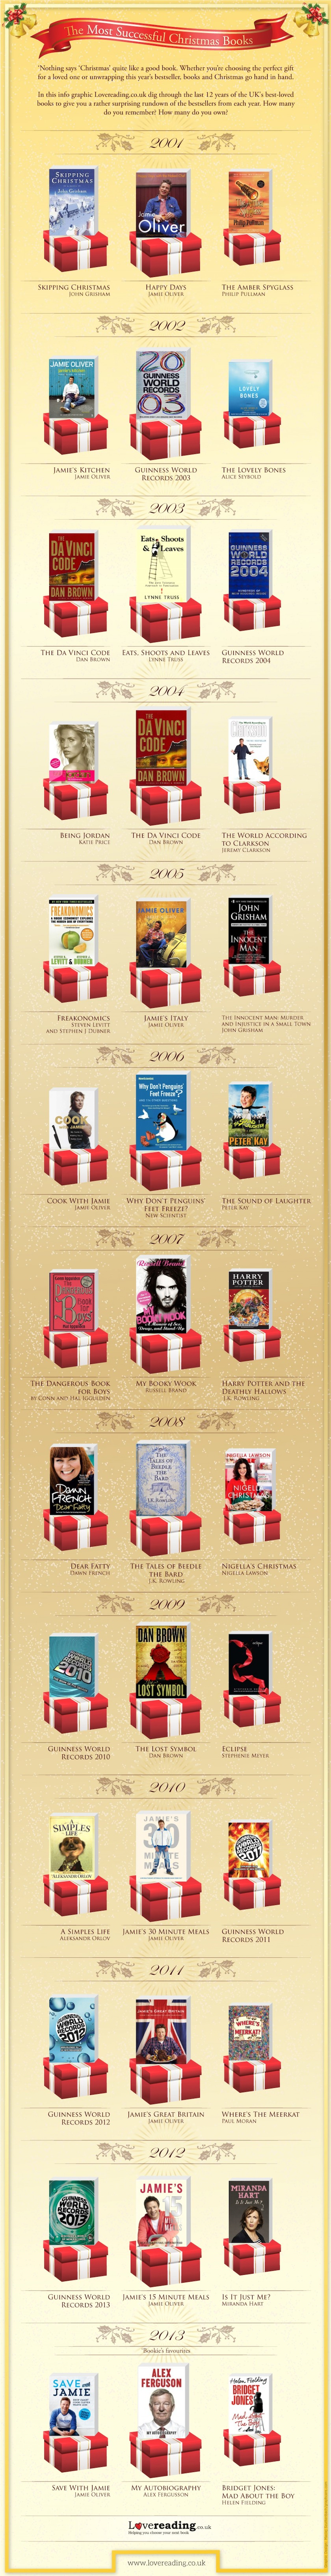 Bestselling-Christmas-books-infographic